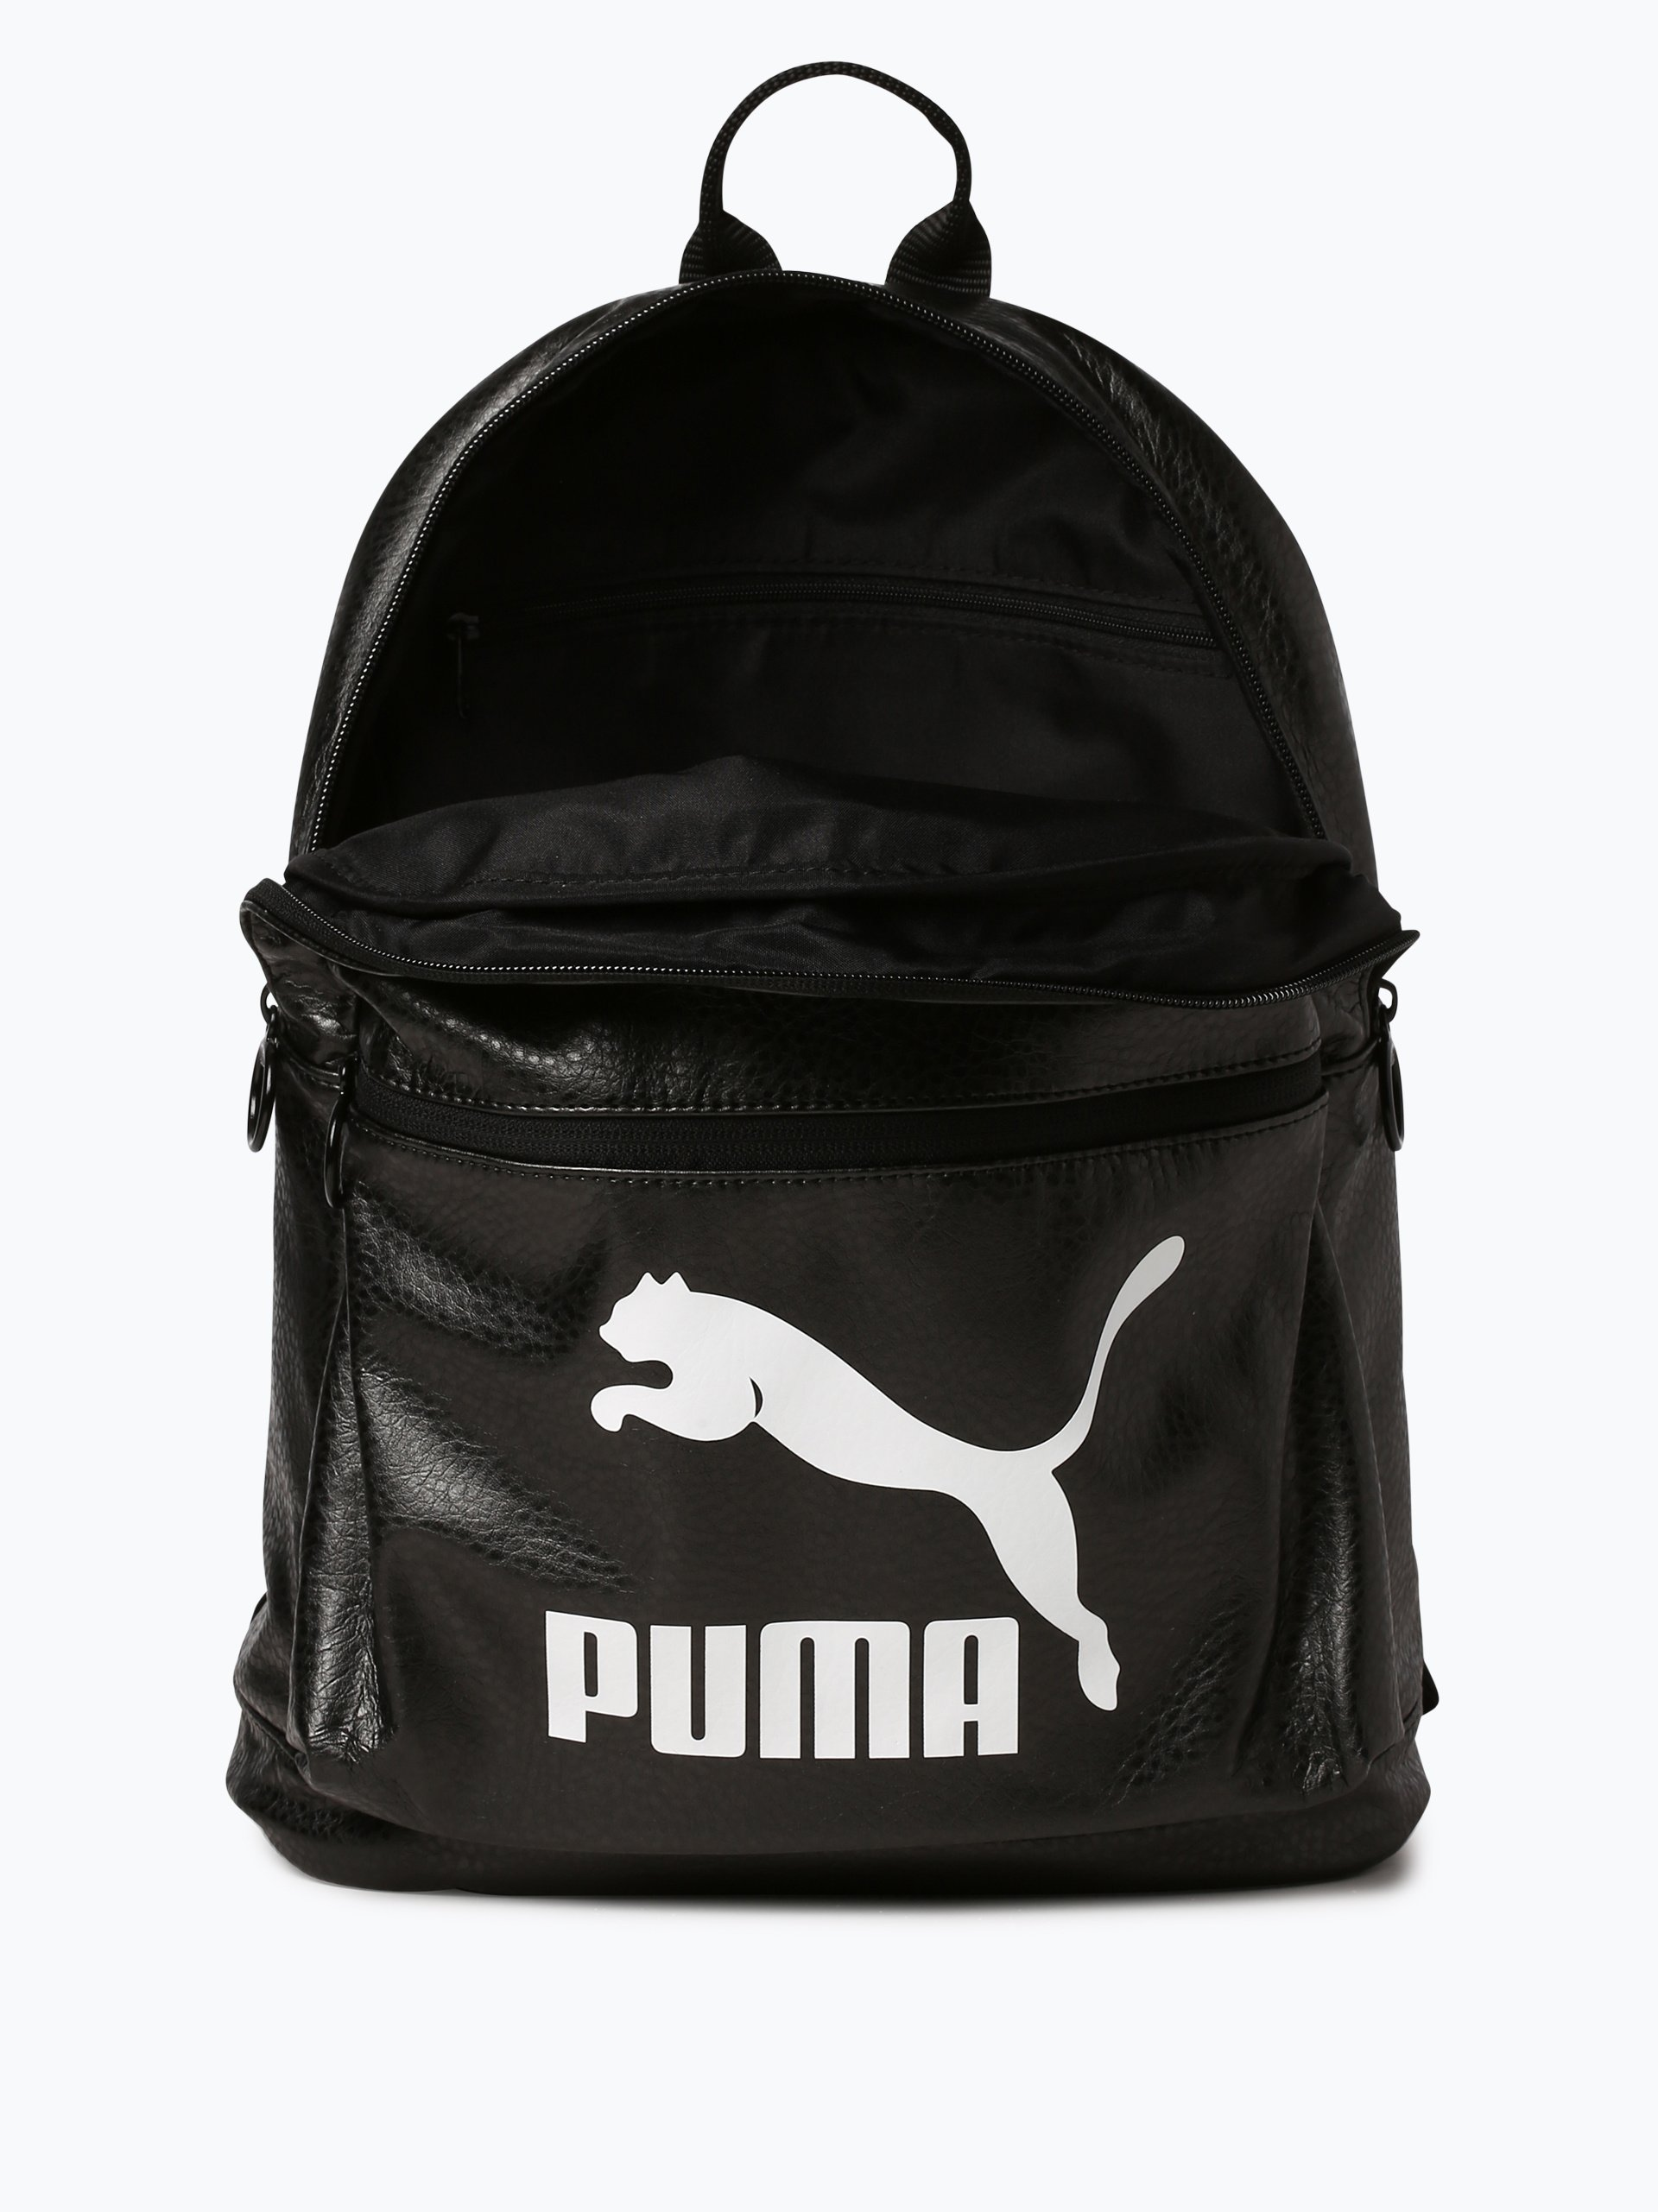 puma damen rucksack schwarz uni online kaufen peek und cloppenburg de. Black Bedroom Furniture Sets. Home Design Ideas